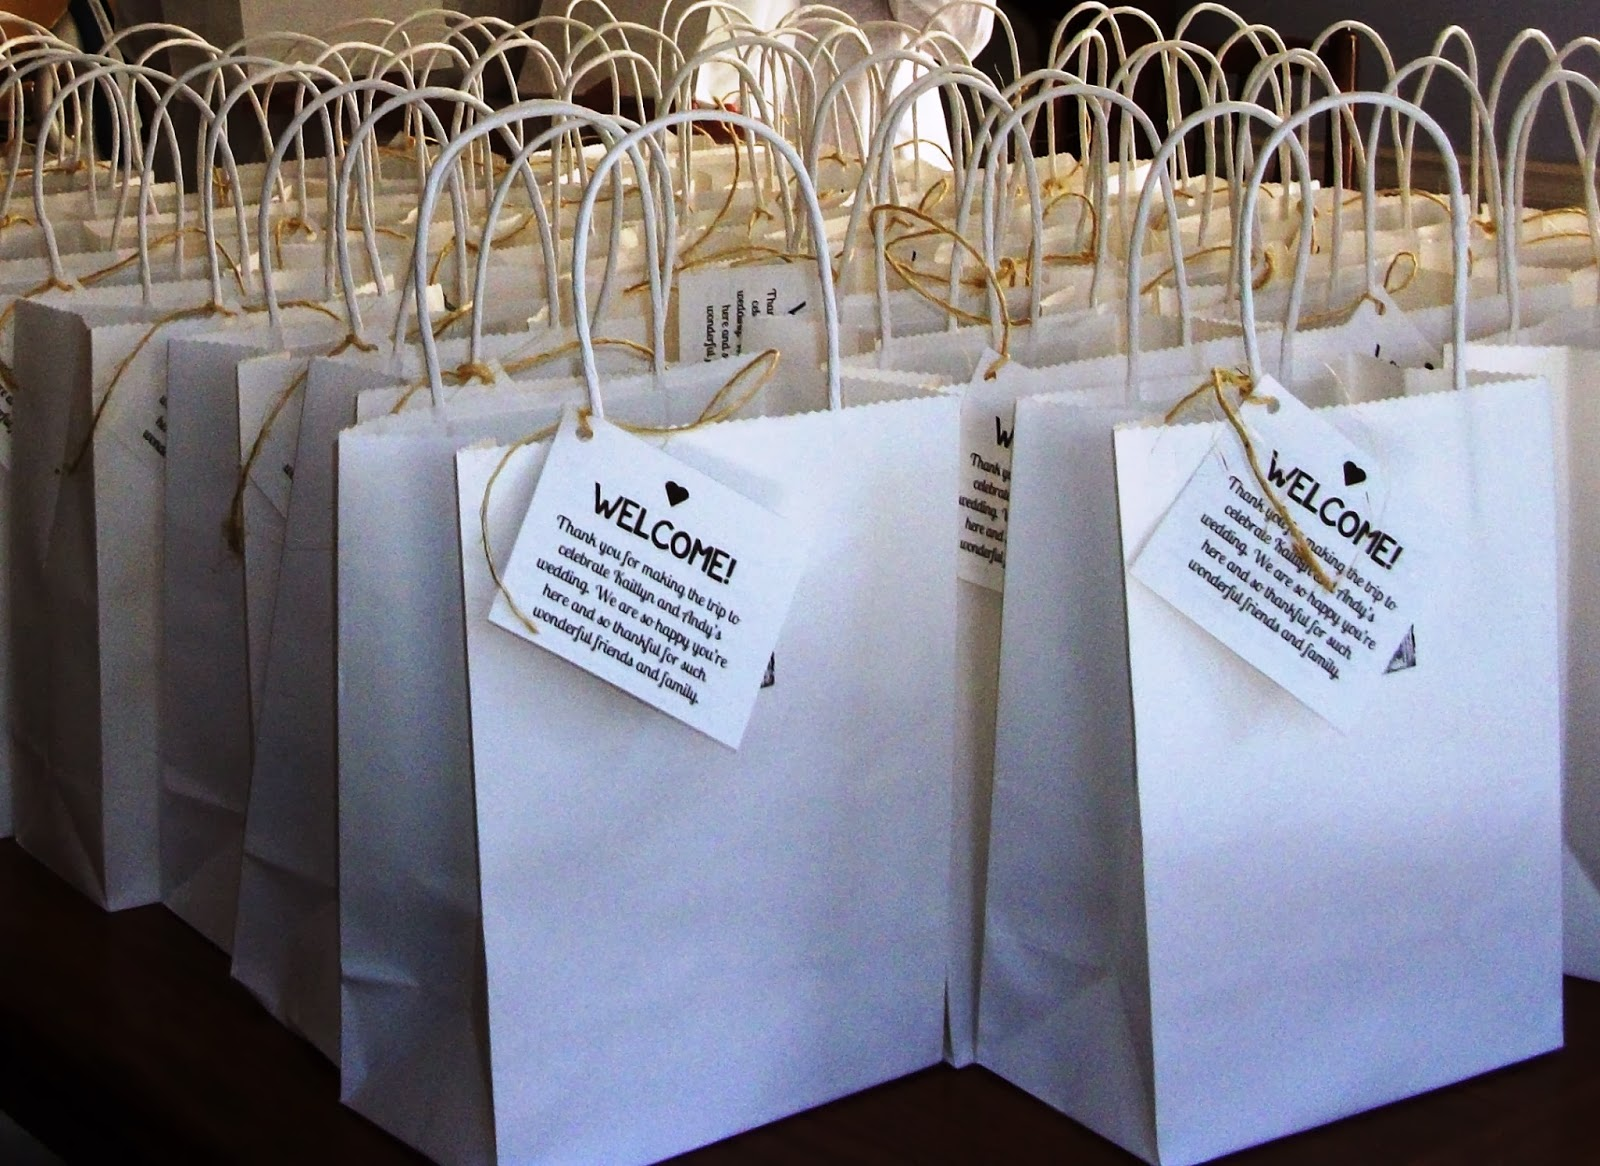 Wedding Gift Etiquette Out Of Town Guests : Lovely Ache: Wedding Welcome Bags for Out-of-Town Guests